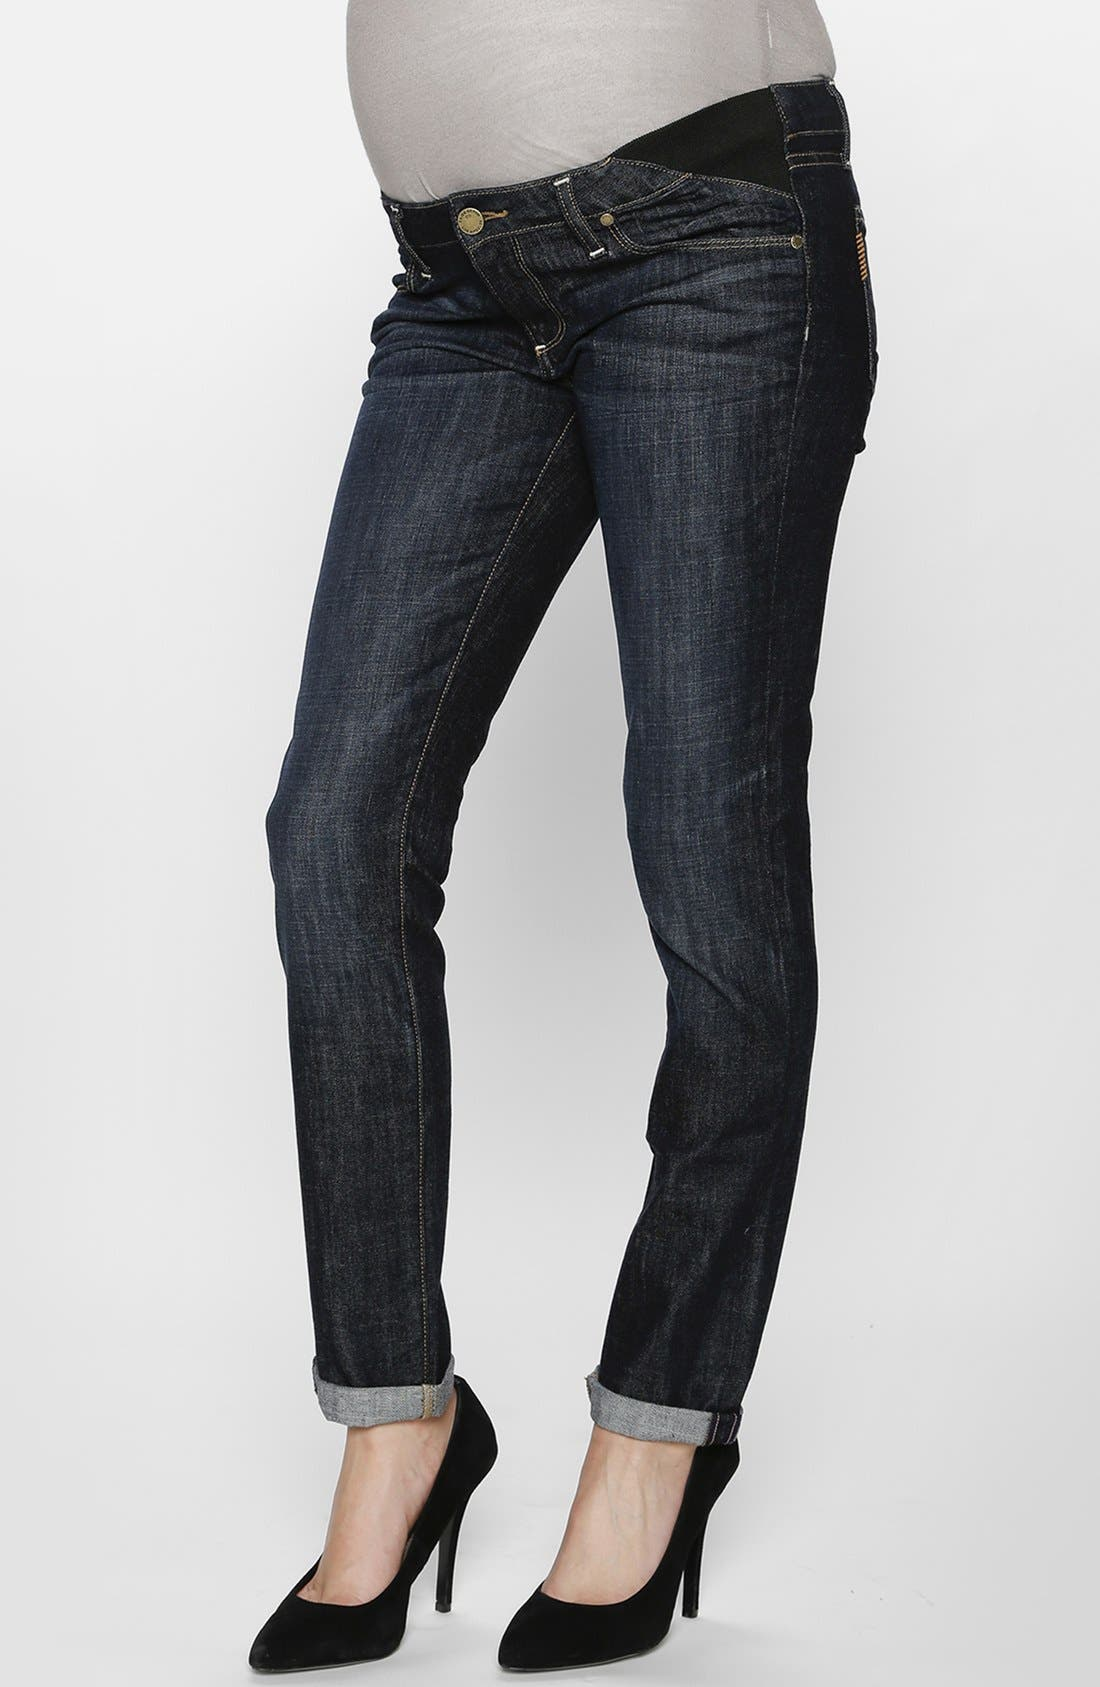 Alternate Image 1 Selected - Paige Denim 'Jimmy Jimmy' Skinny Boyfriend Maternity Jeans (Blue)